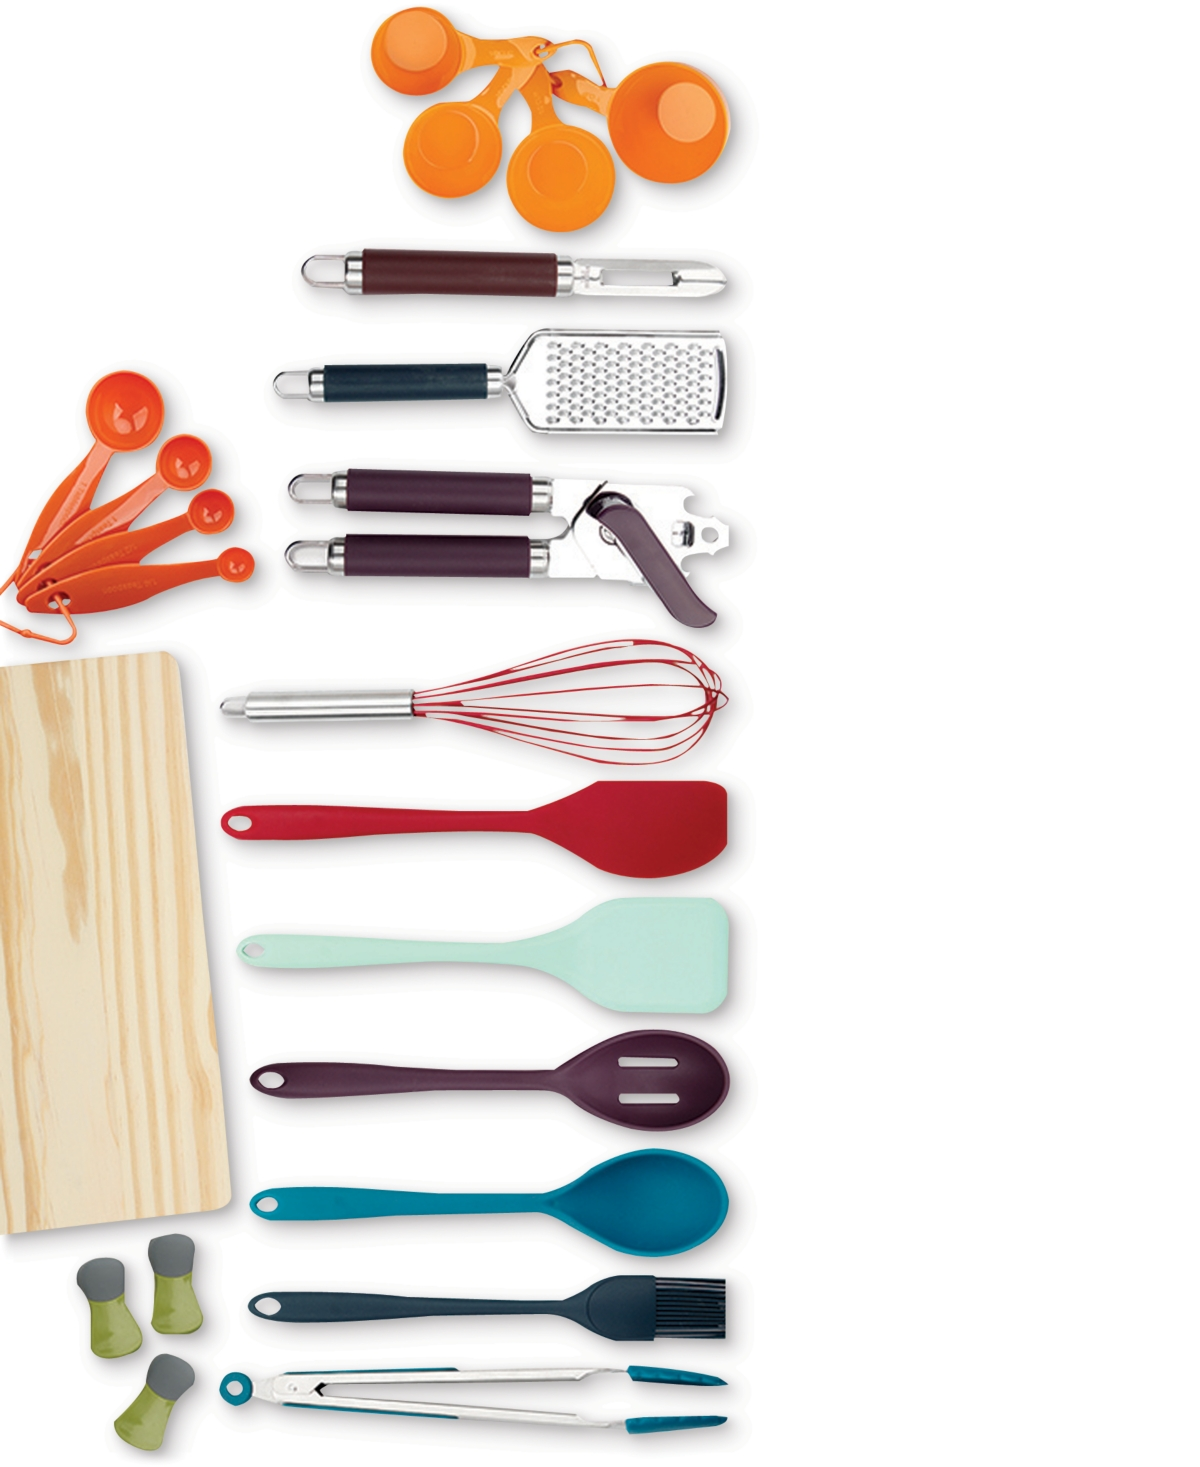 Tools of the Trade 22-Pc. Kitchen Gadget Set, Created for Macy's